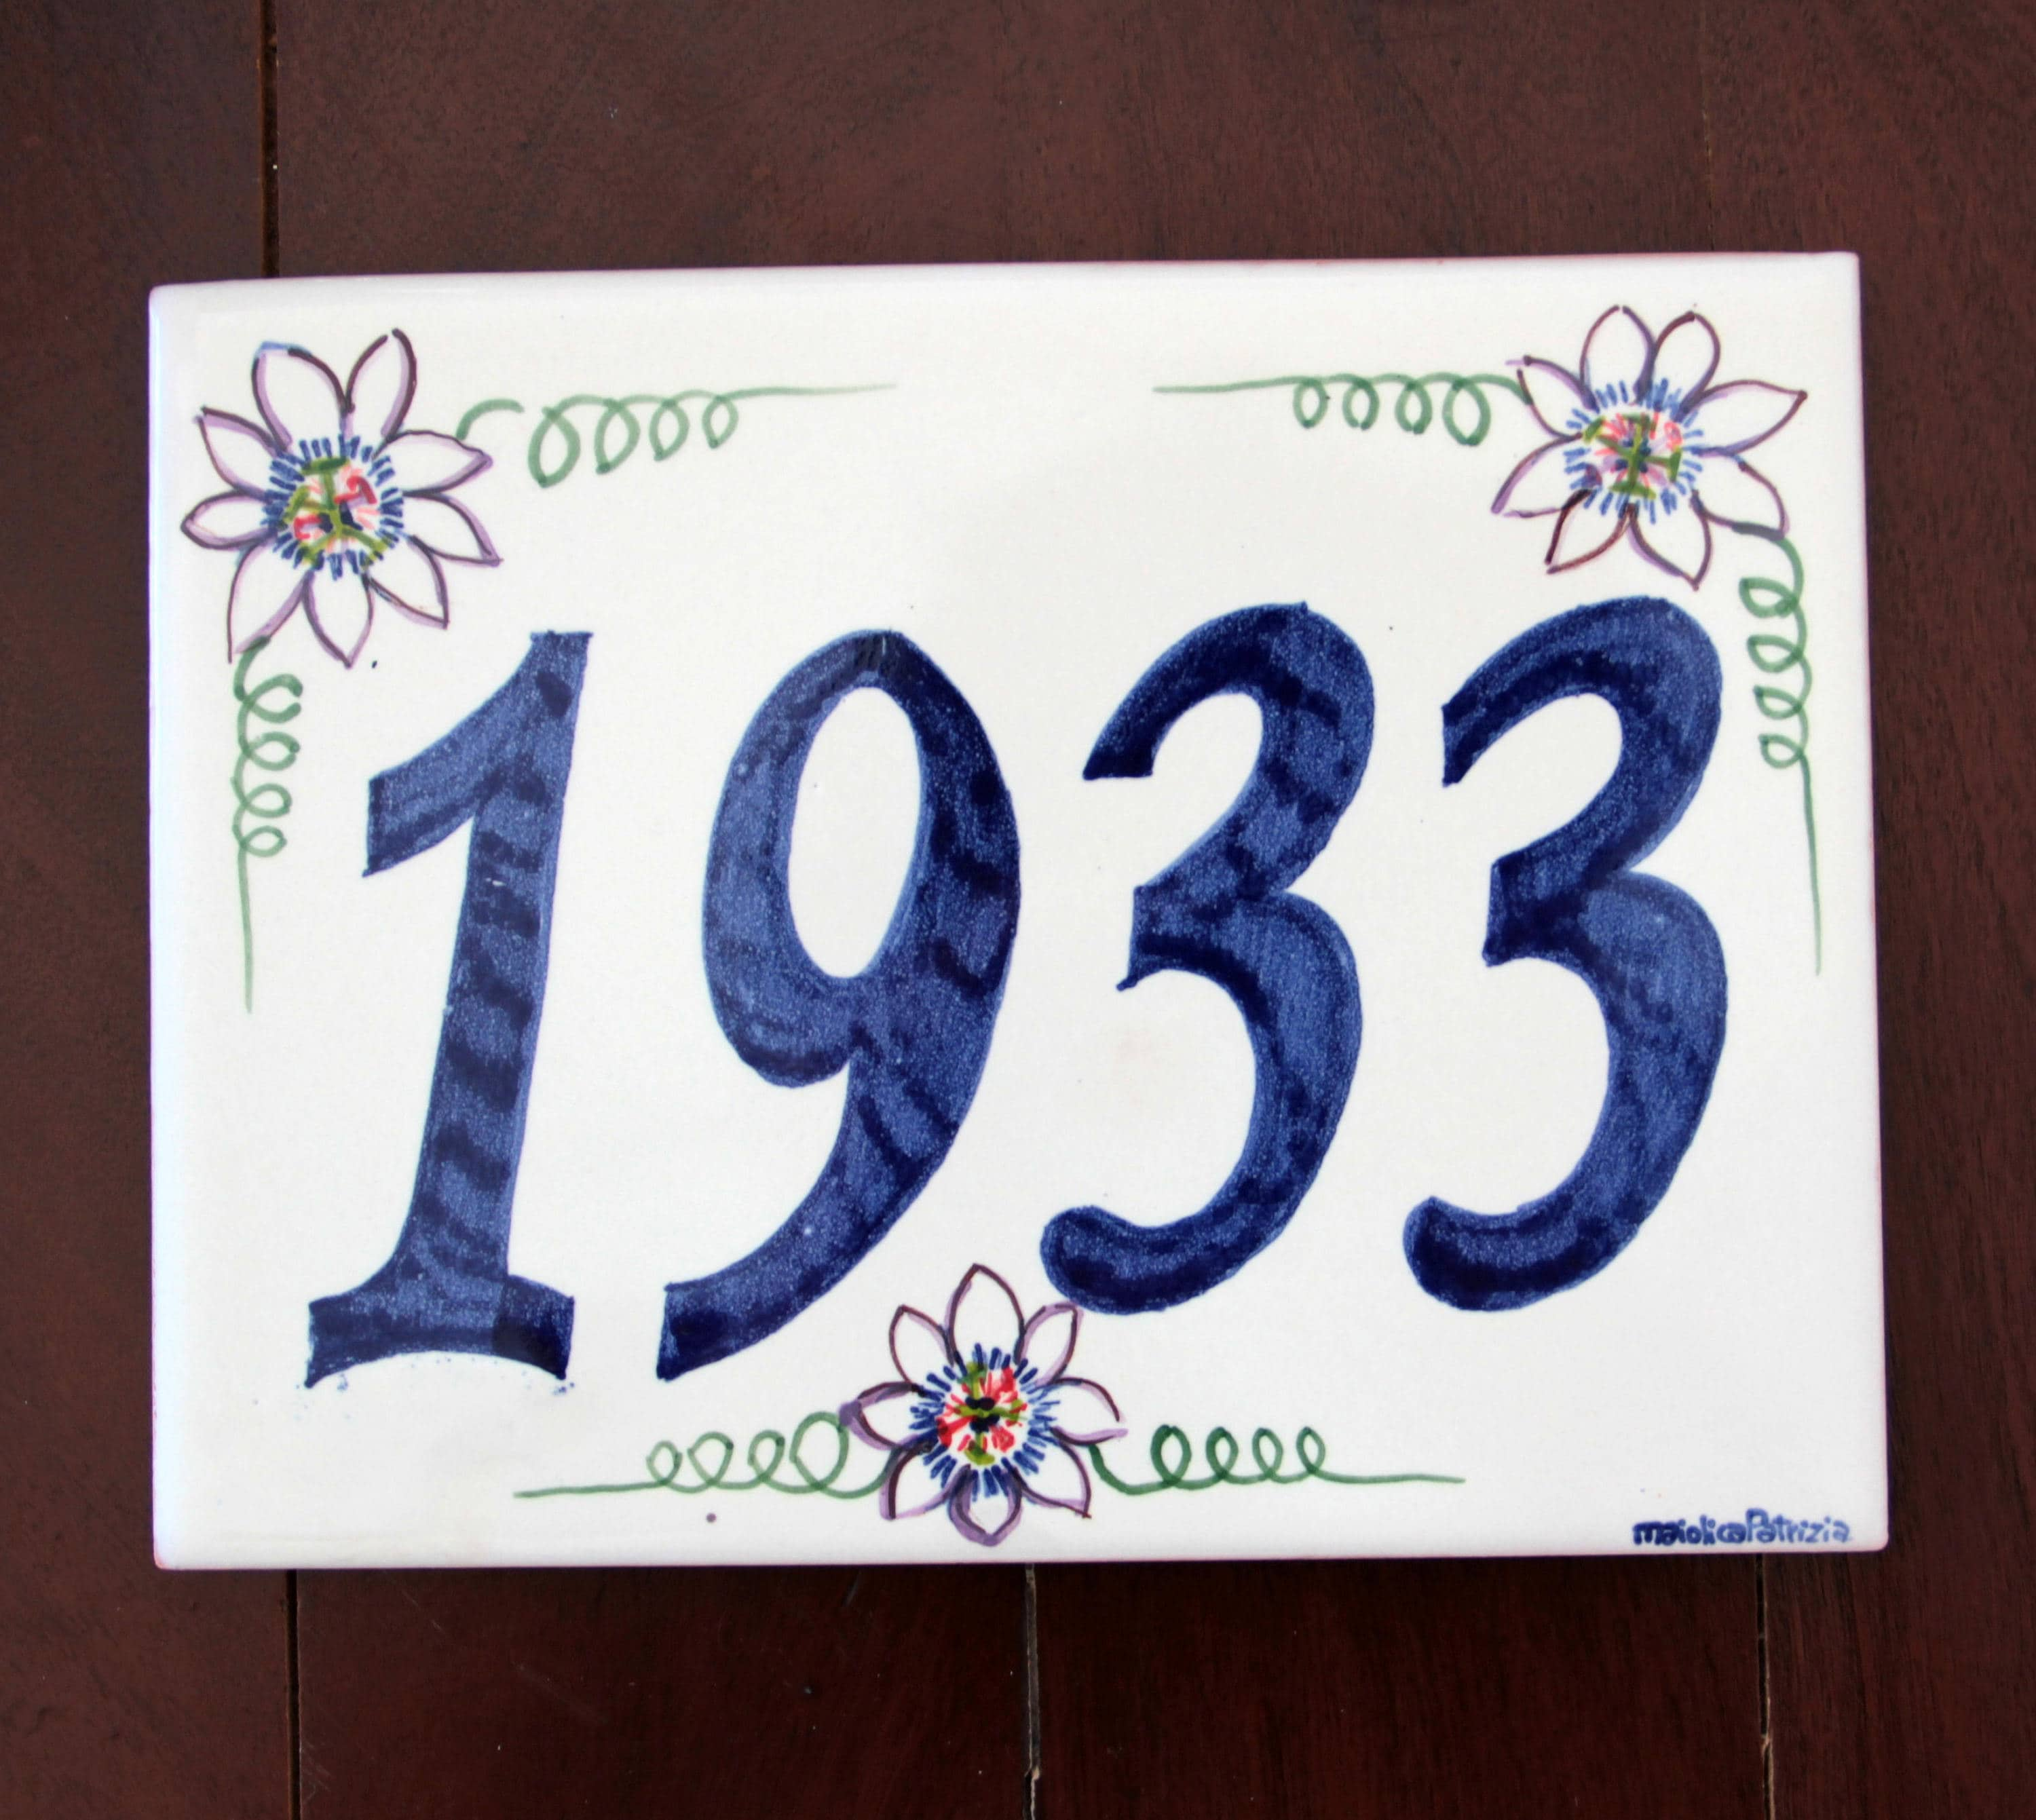 Rectangular plaque italian pottery outdoor numbers italian rectangular plaque italian pottery outdoor numbers italian majolica tile house sign customized plaque painted ceramic name sign italy dailygadgetfo Gallery